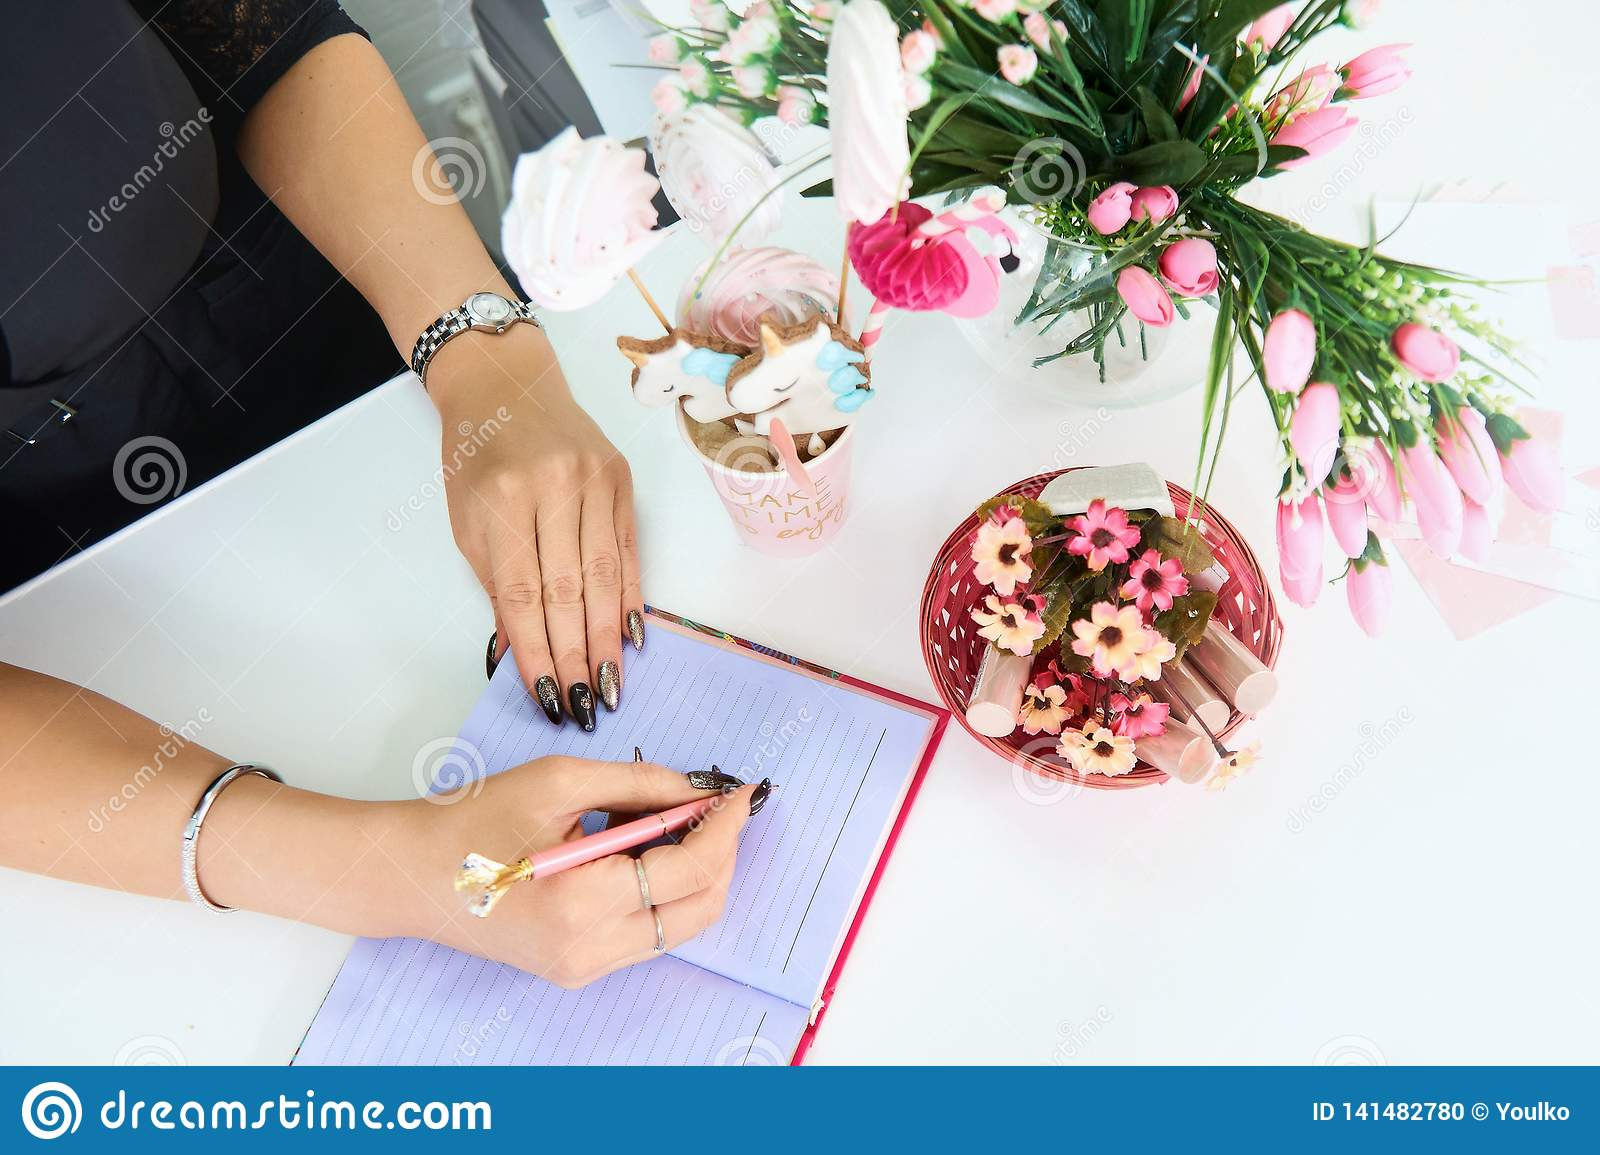 Hands European girls holding a pen and write in an empty notebook. Nearby are flowers and candy